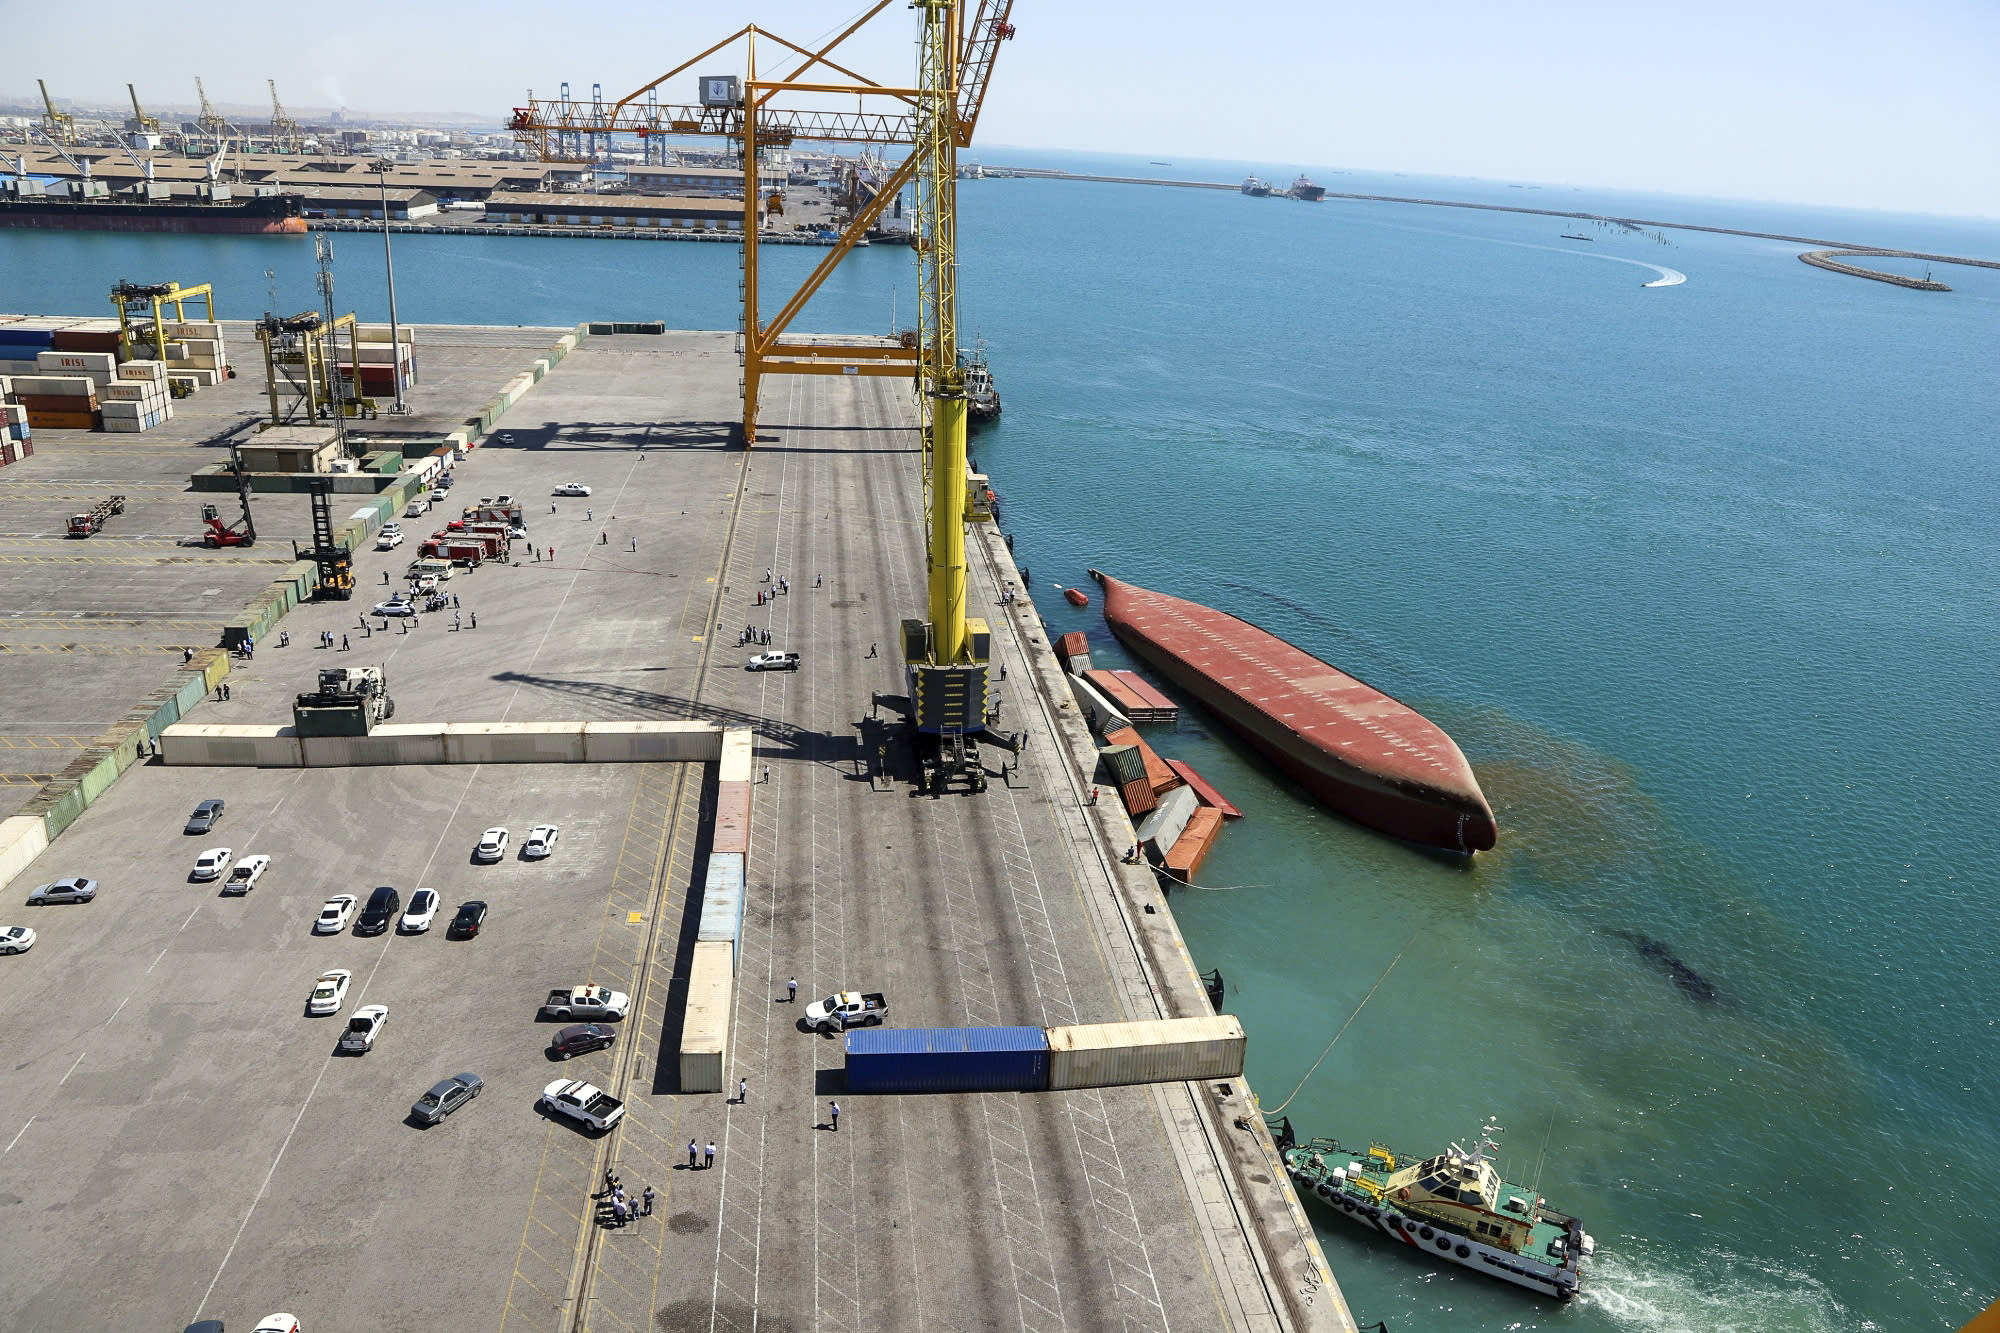 Careless loading of cargo containers sinks ship in Iran port